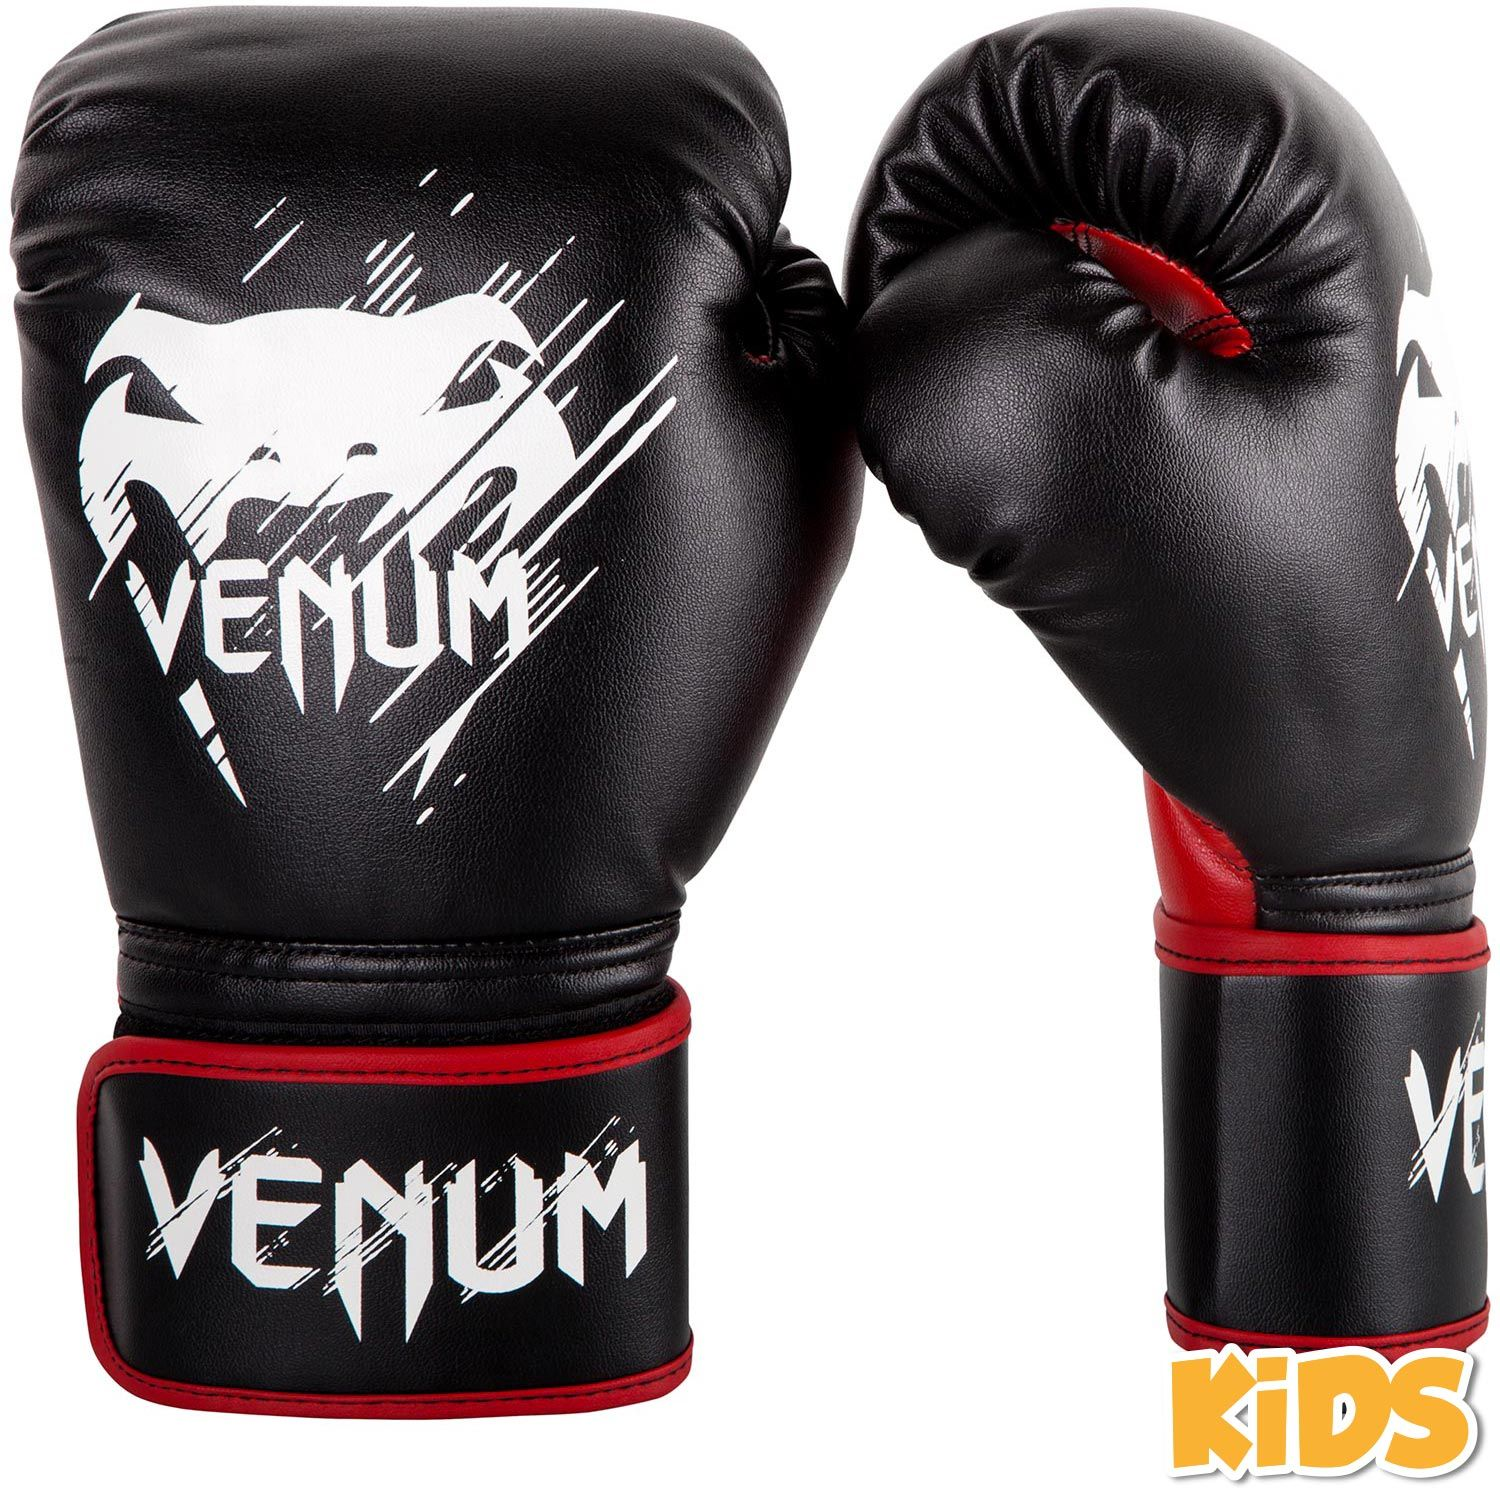 Venum Contender Kids Boxing Gloves - Black/Red